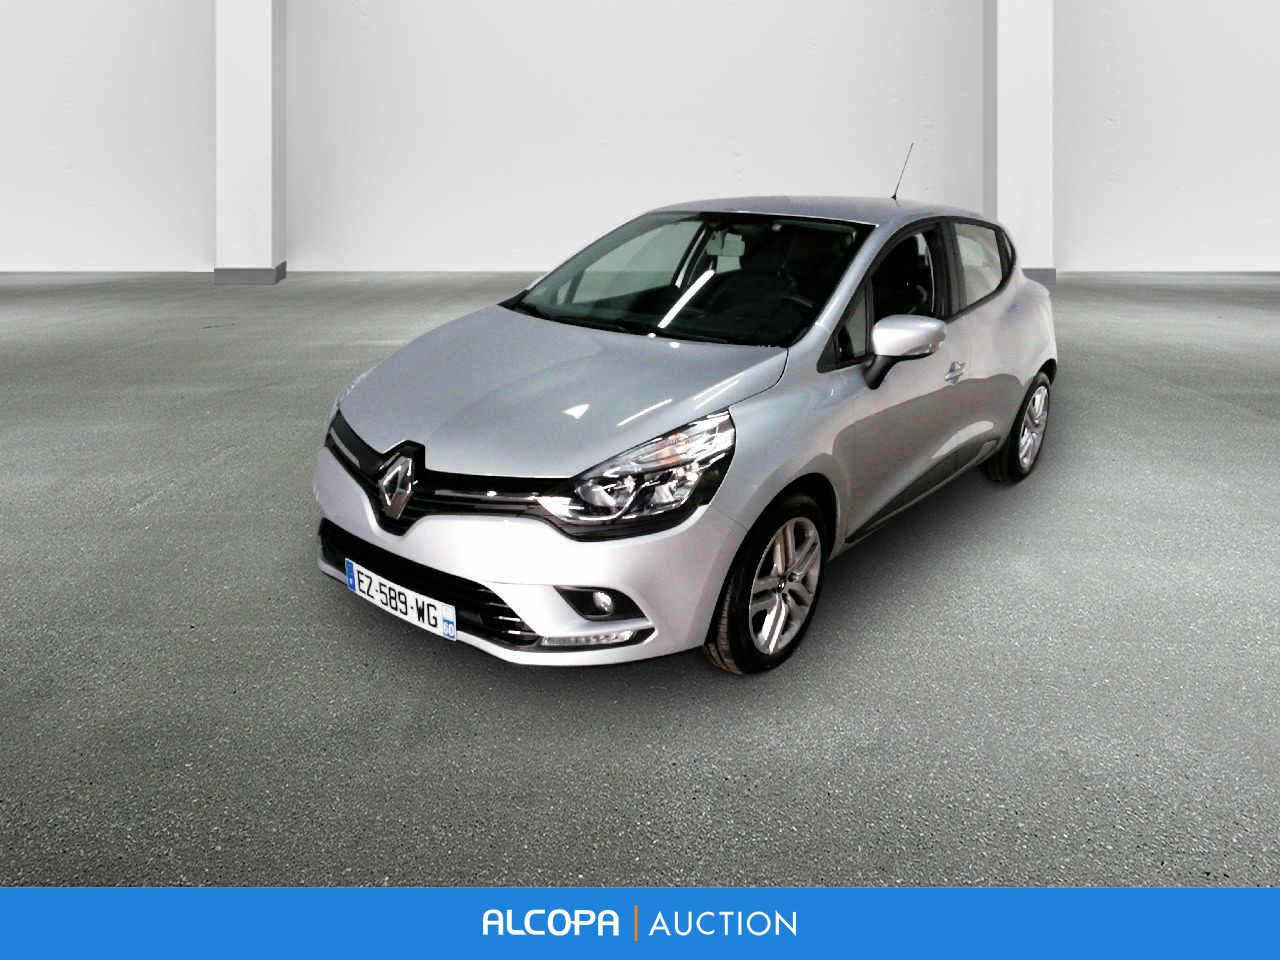 renault clio iv clio dci 75 energy business alcopa auction. Black Bedroom Furniture Sets. Home Design Ideas